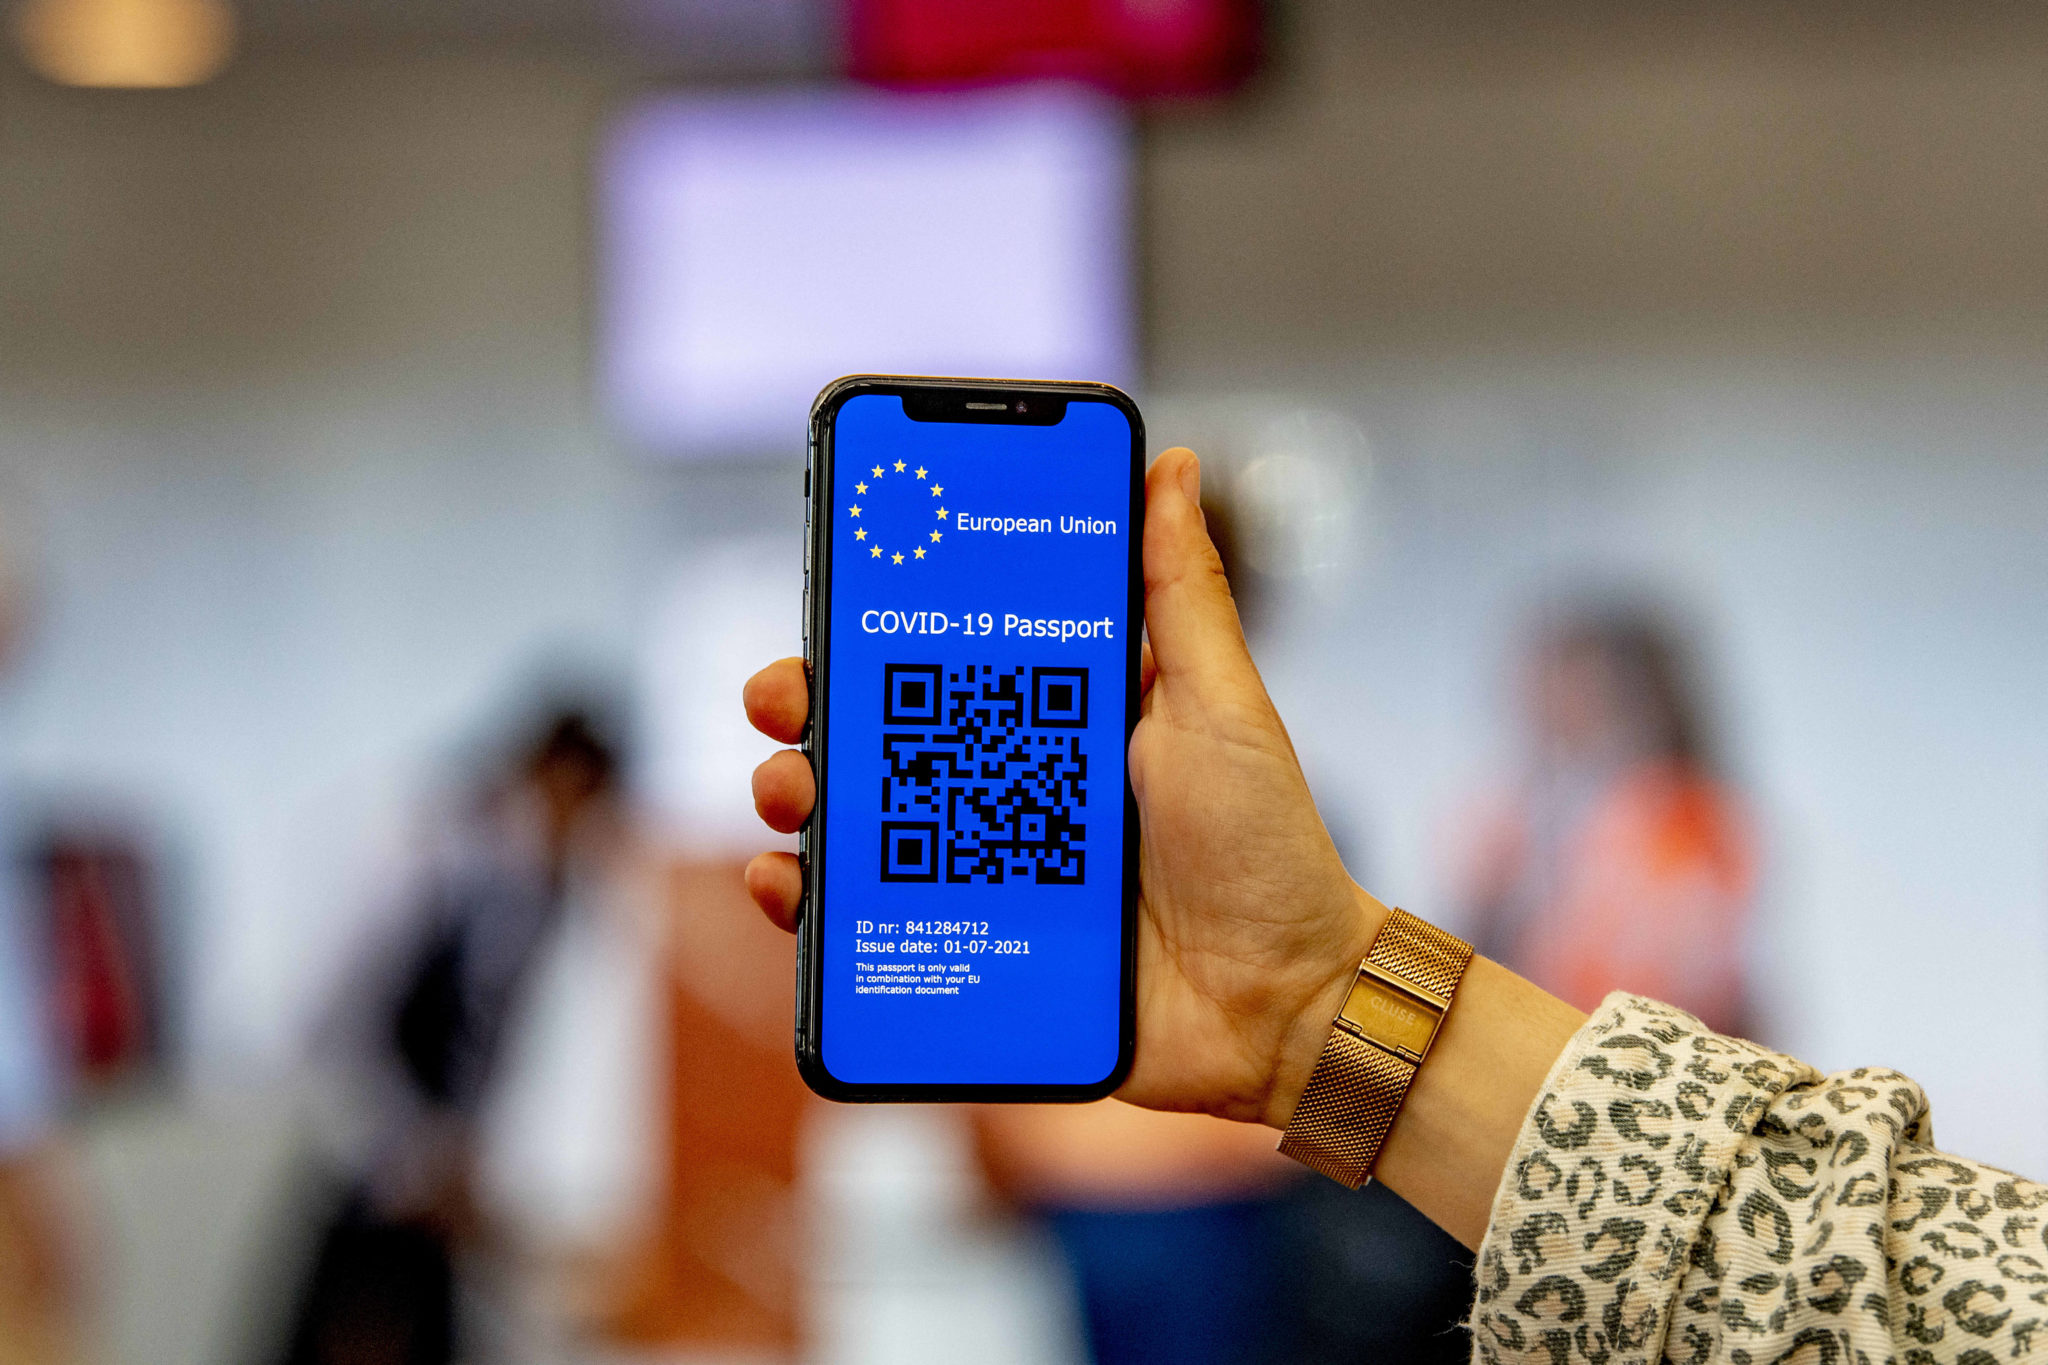 A coronavirus passport with a QR code on a mobile phone at Rotterdam Airport, Netherlands.